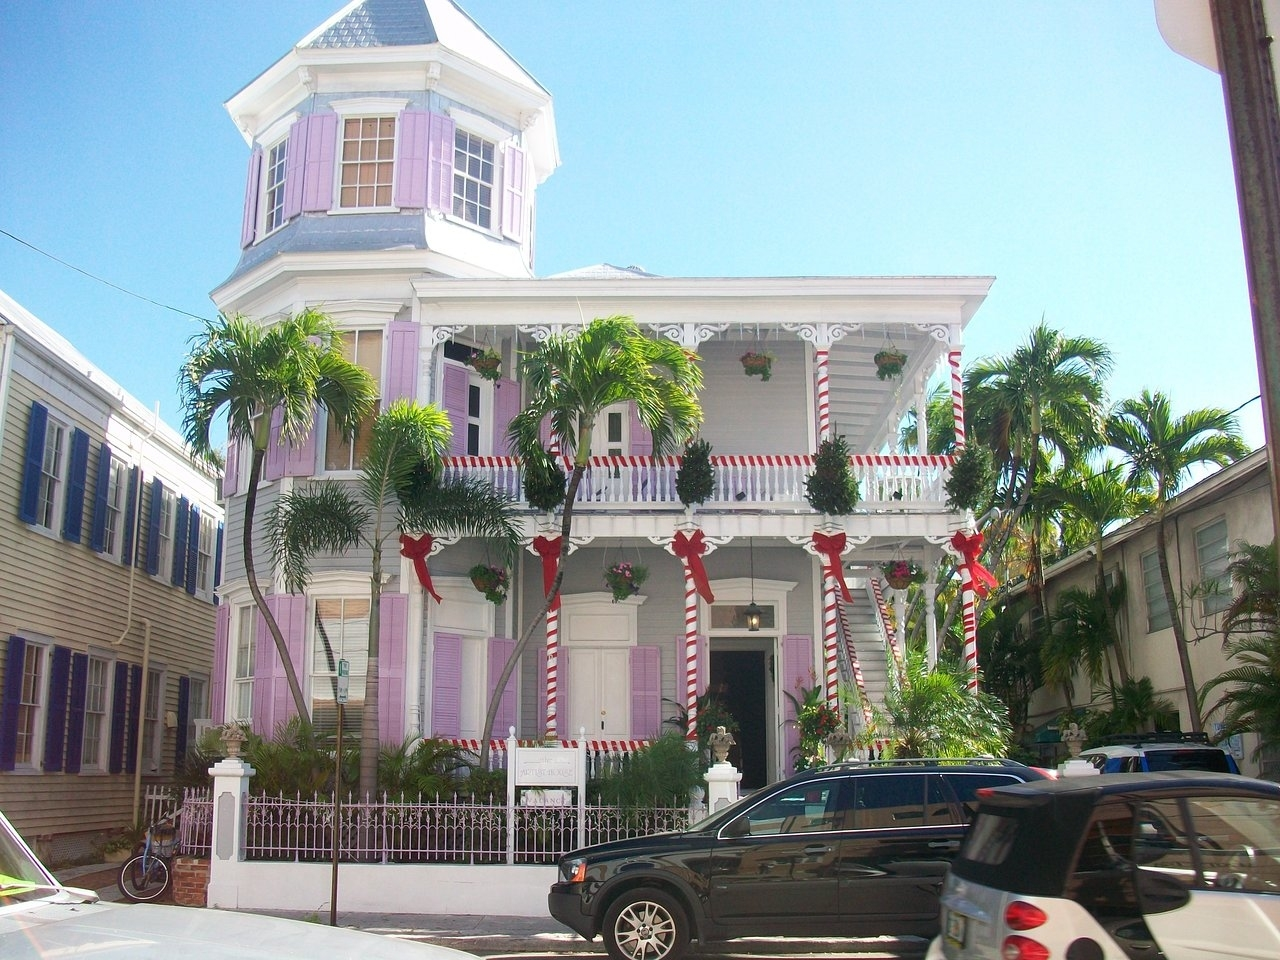 Artist House $199 ($̶2̶1̶2̶) - Updated 2019 Prices & B&b Reviews with regard to Tripadvisor Garden House Bed And Breakfast Key West